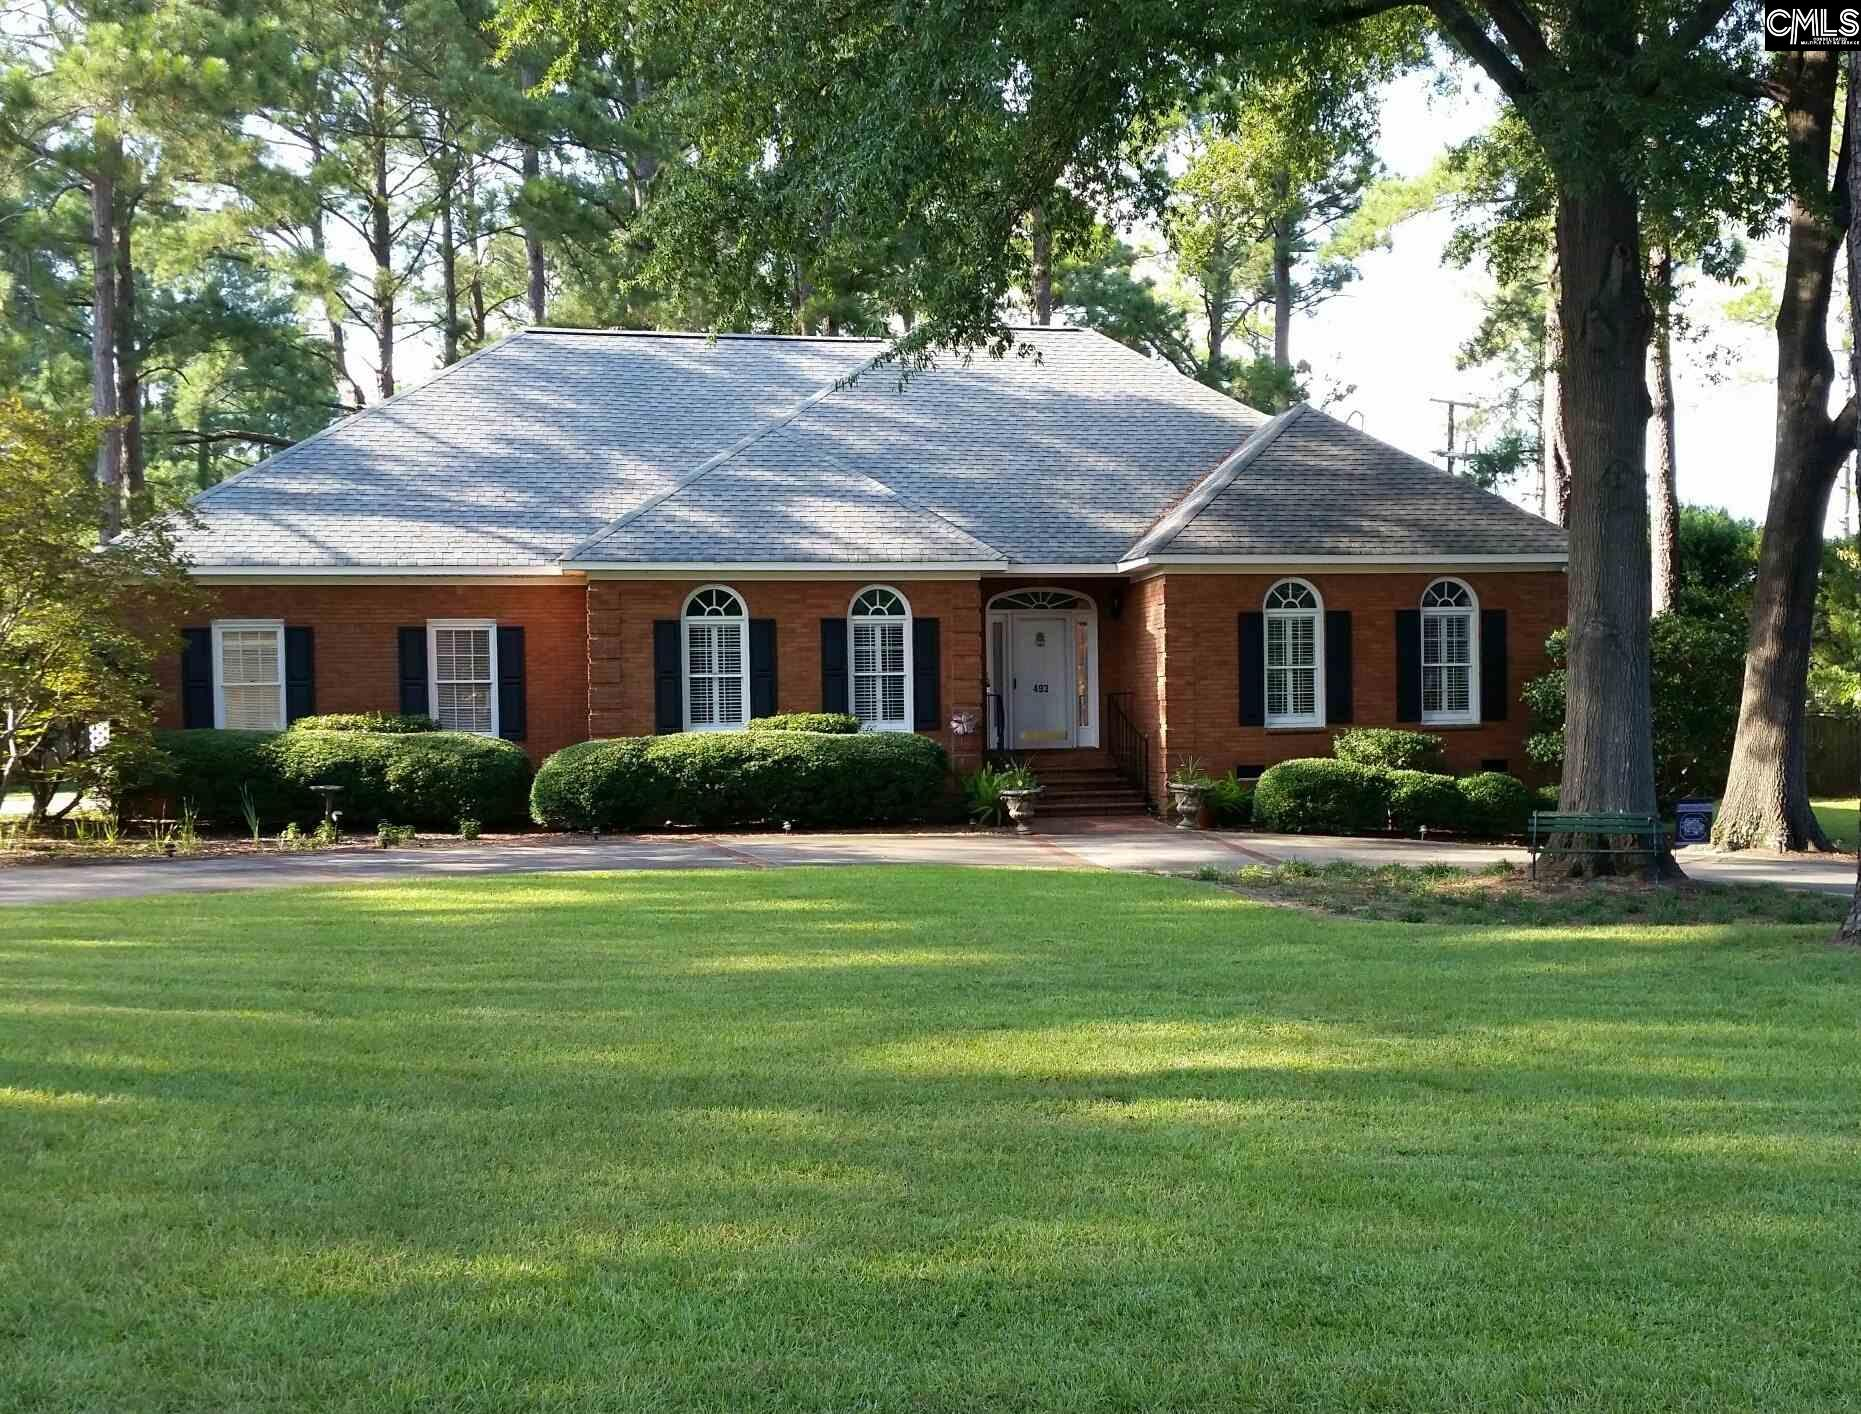 493 Galway Columbia, SC 29209